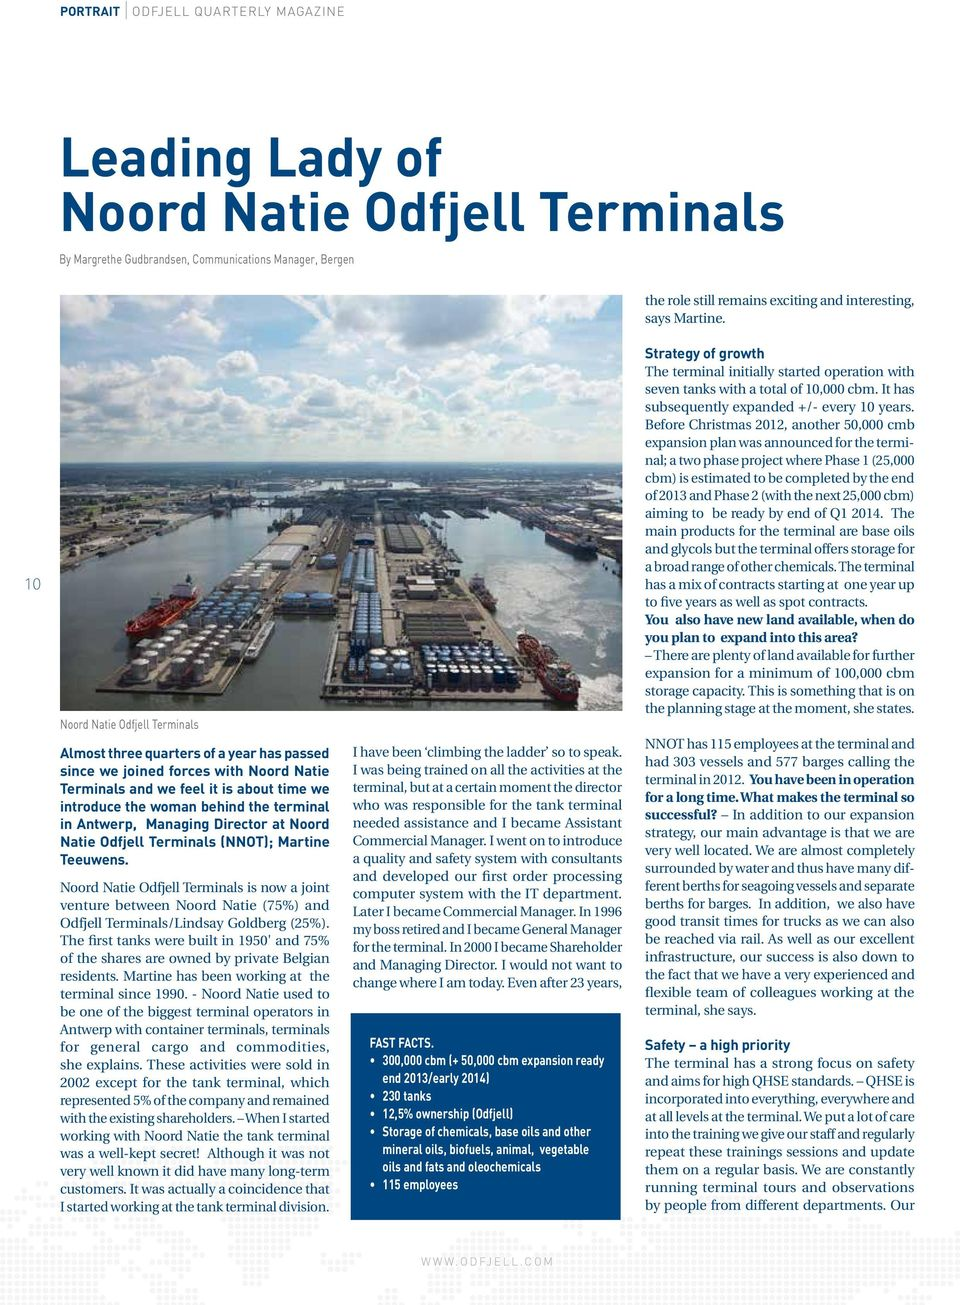 10 Noord Natie Odfjell Terminals Almost three quarters of a year has passed since we joined forces with Noord Natie Terminals and we feel it is about time we introduce the woman behind the terminal